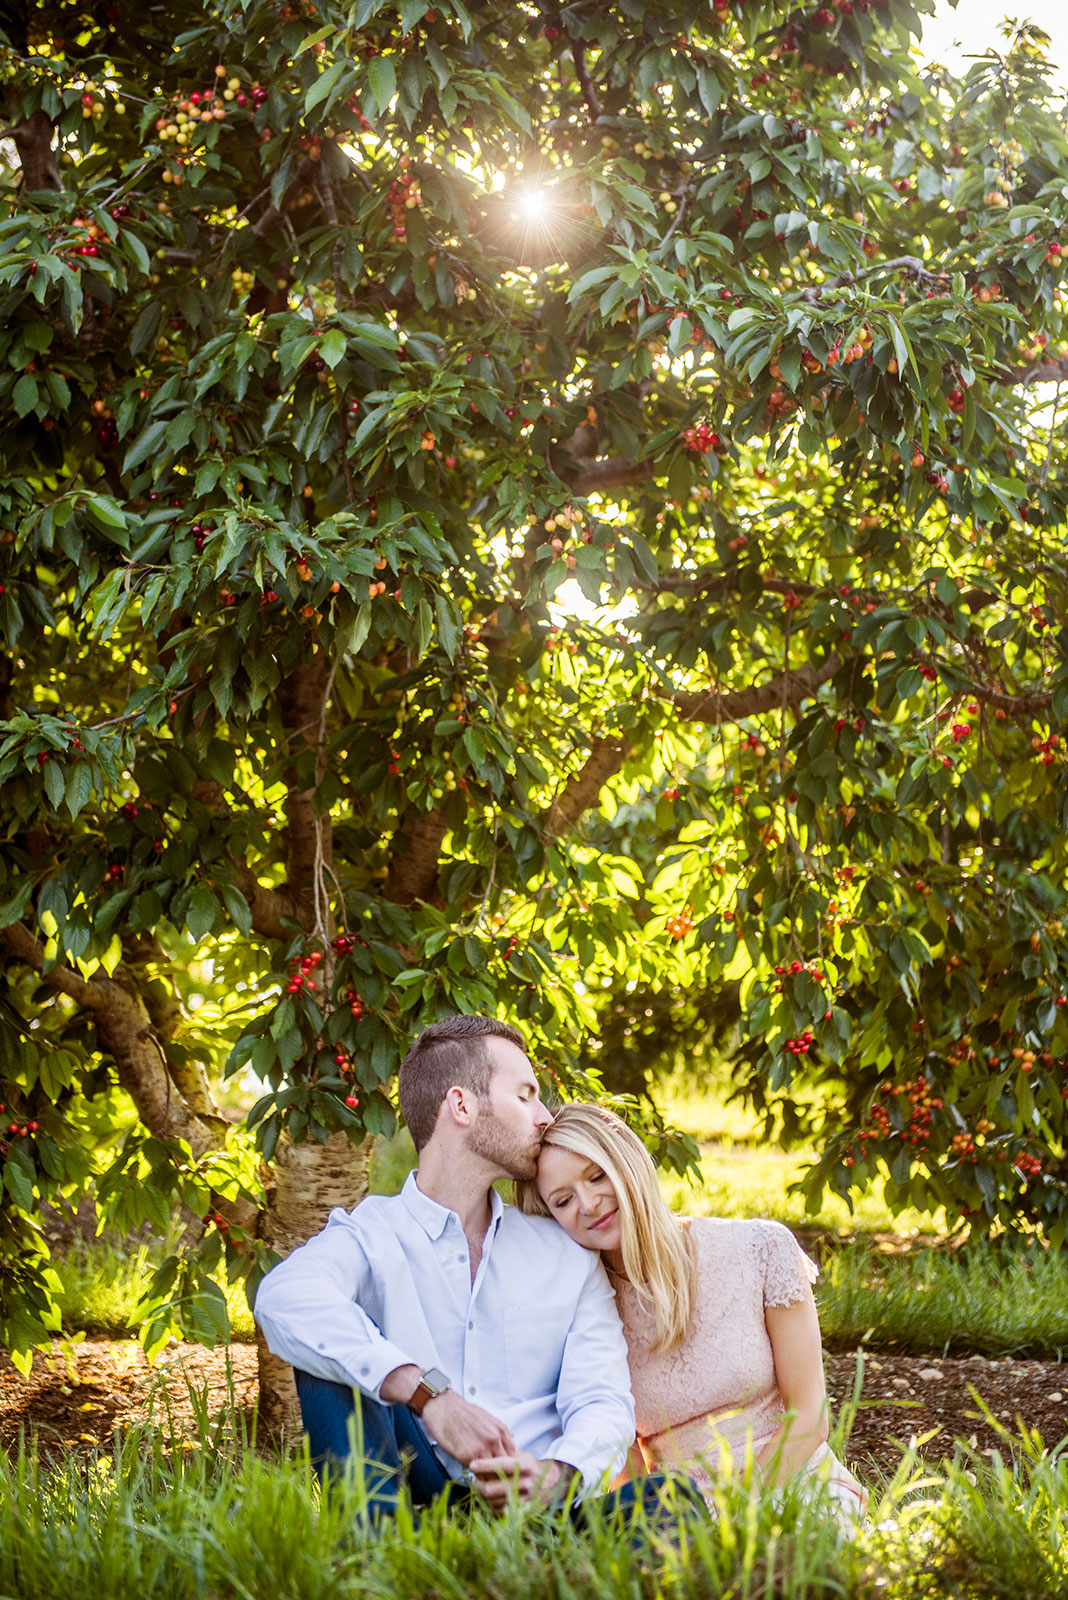 armstrong-engagement-hollister-photography-05